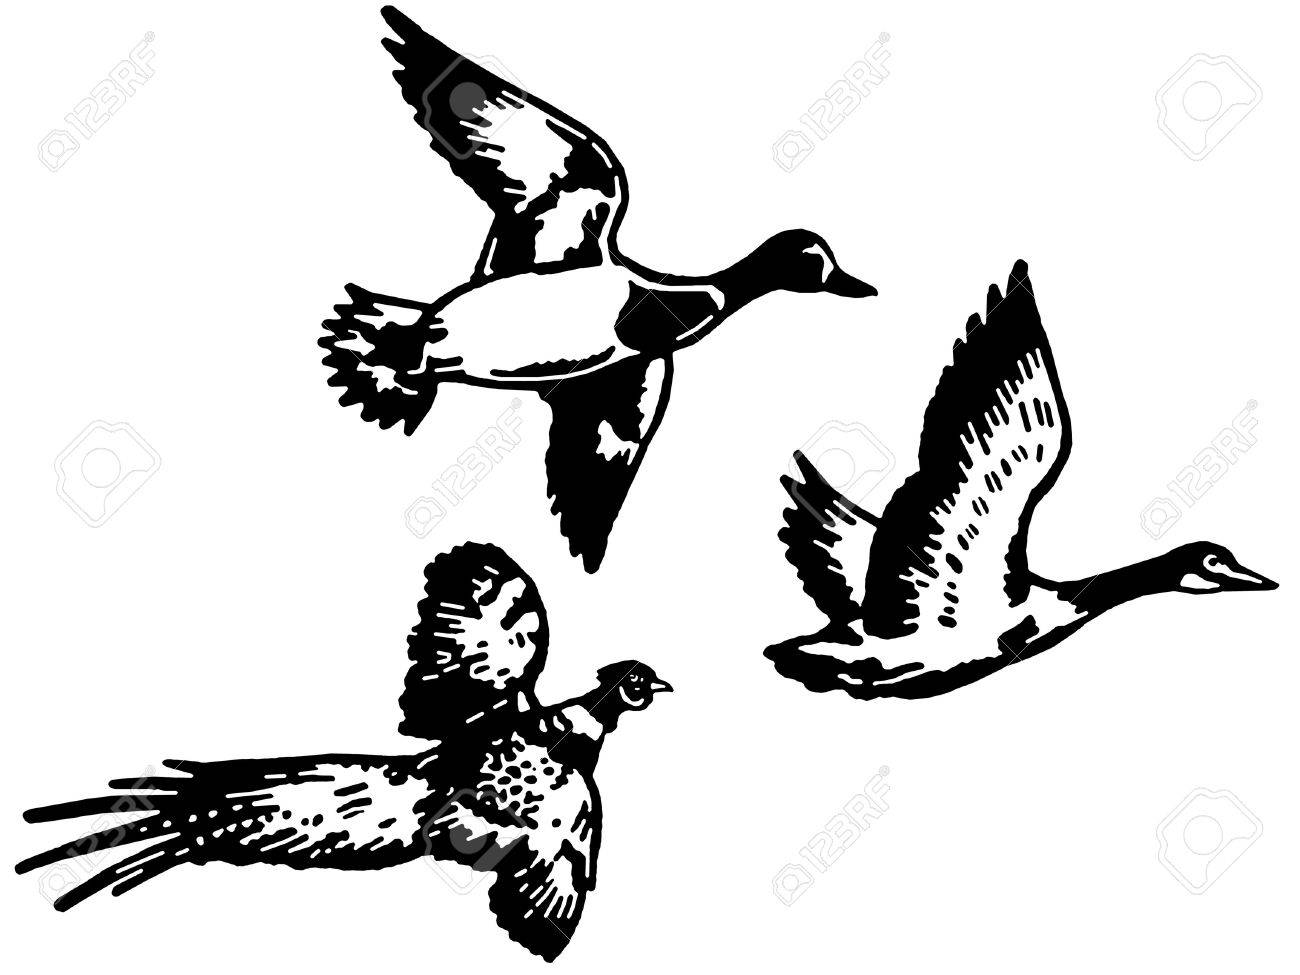 1300x975 A Black And White Version Of Three Different Breeds Of Duck Flying